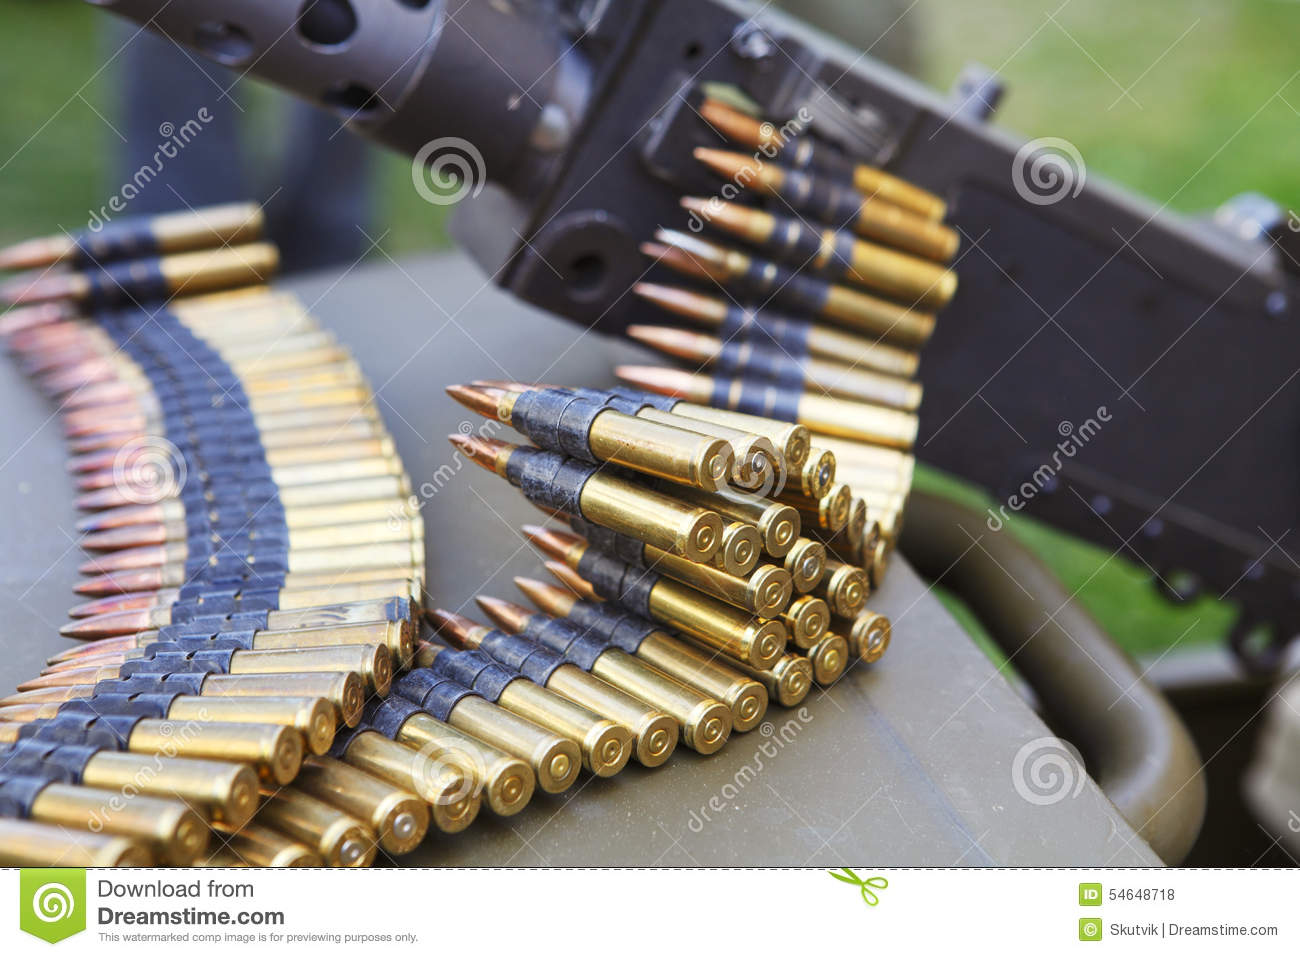 Machine Gun With Ammunition Belt Stock Photo - Image: 54648718